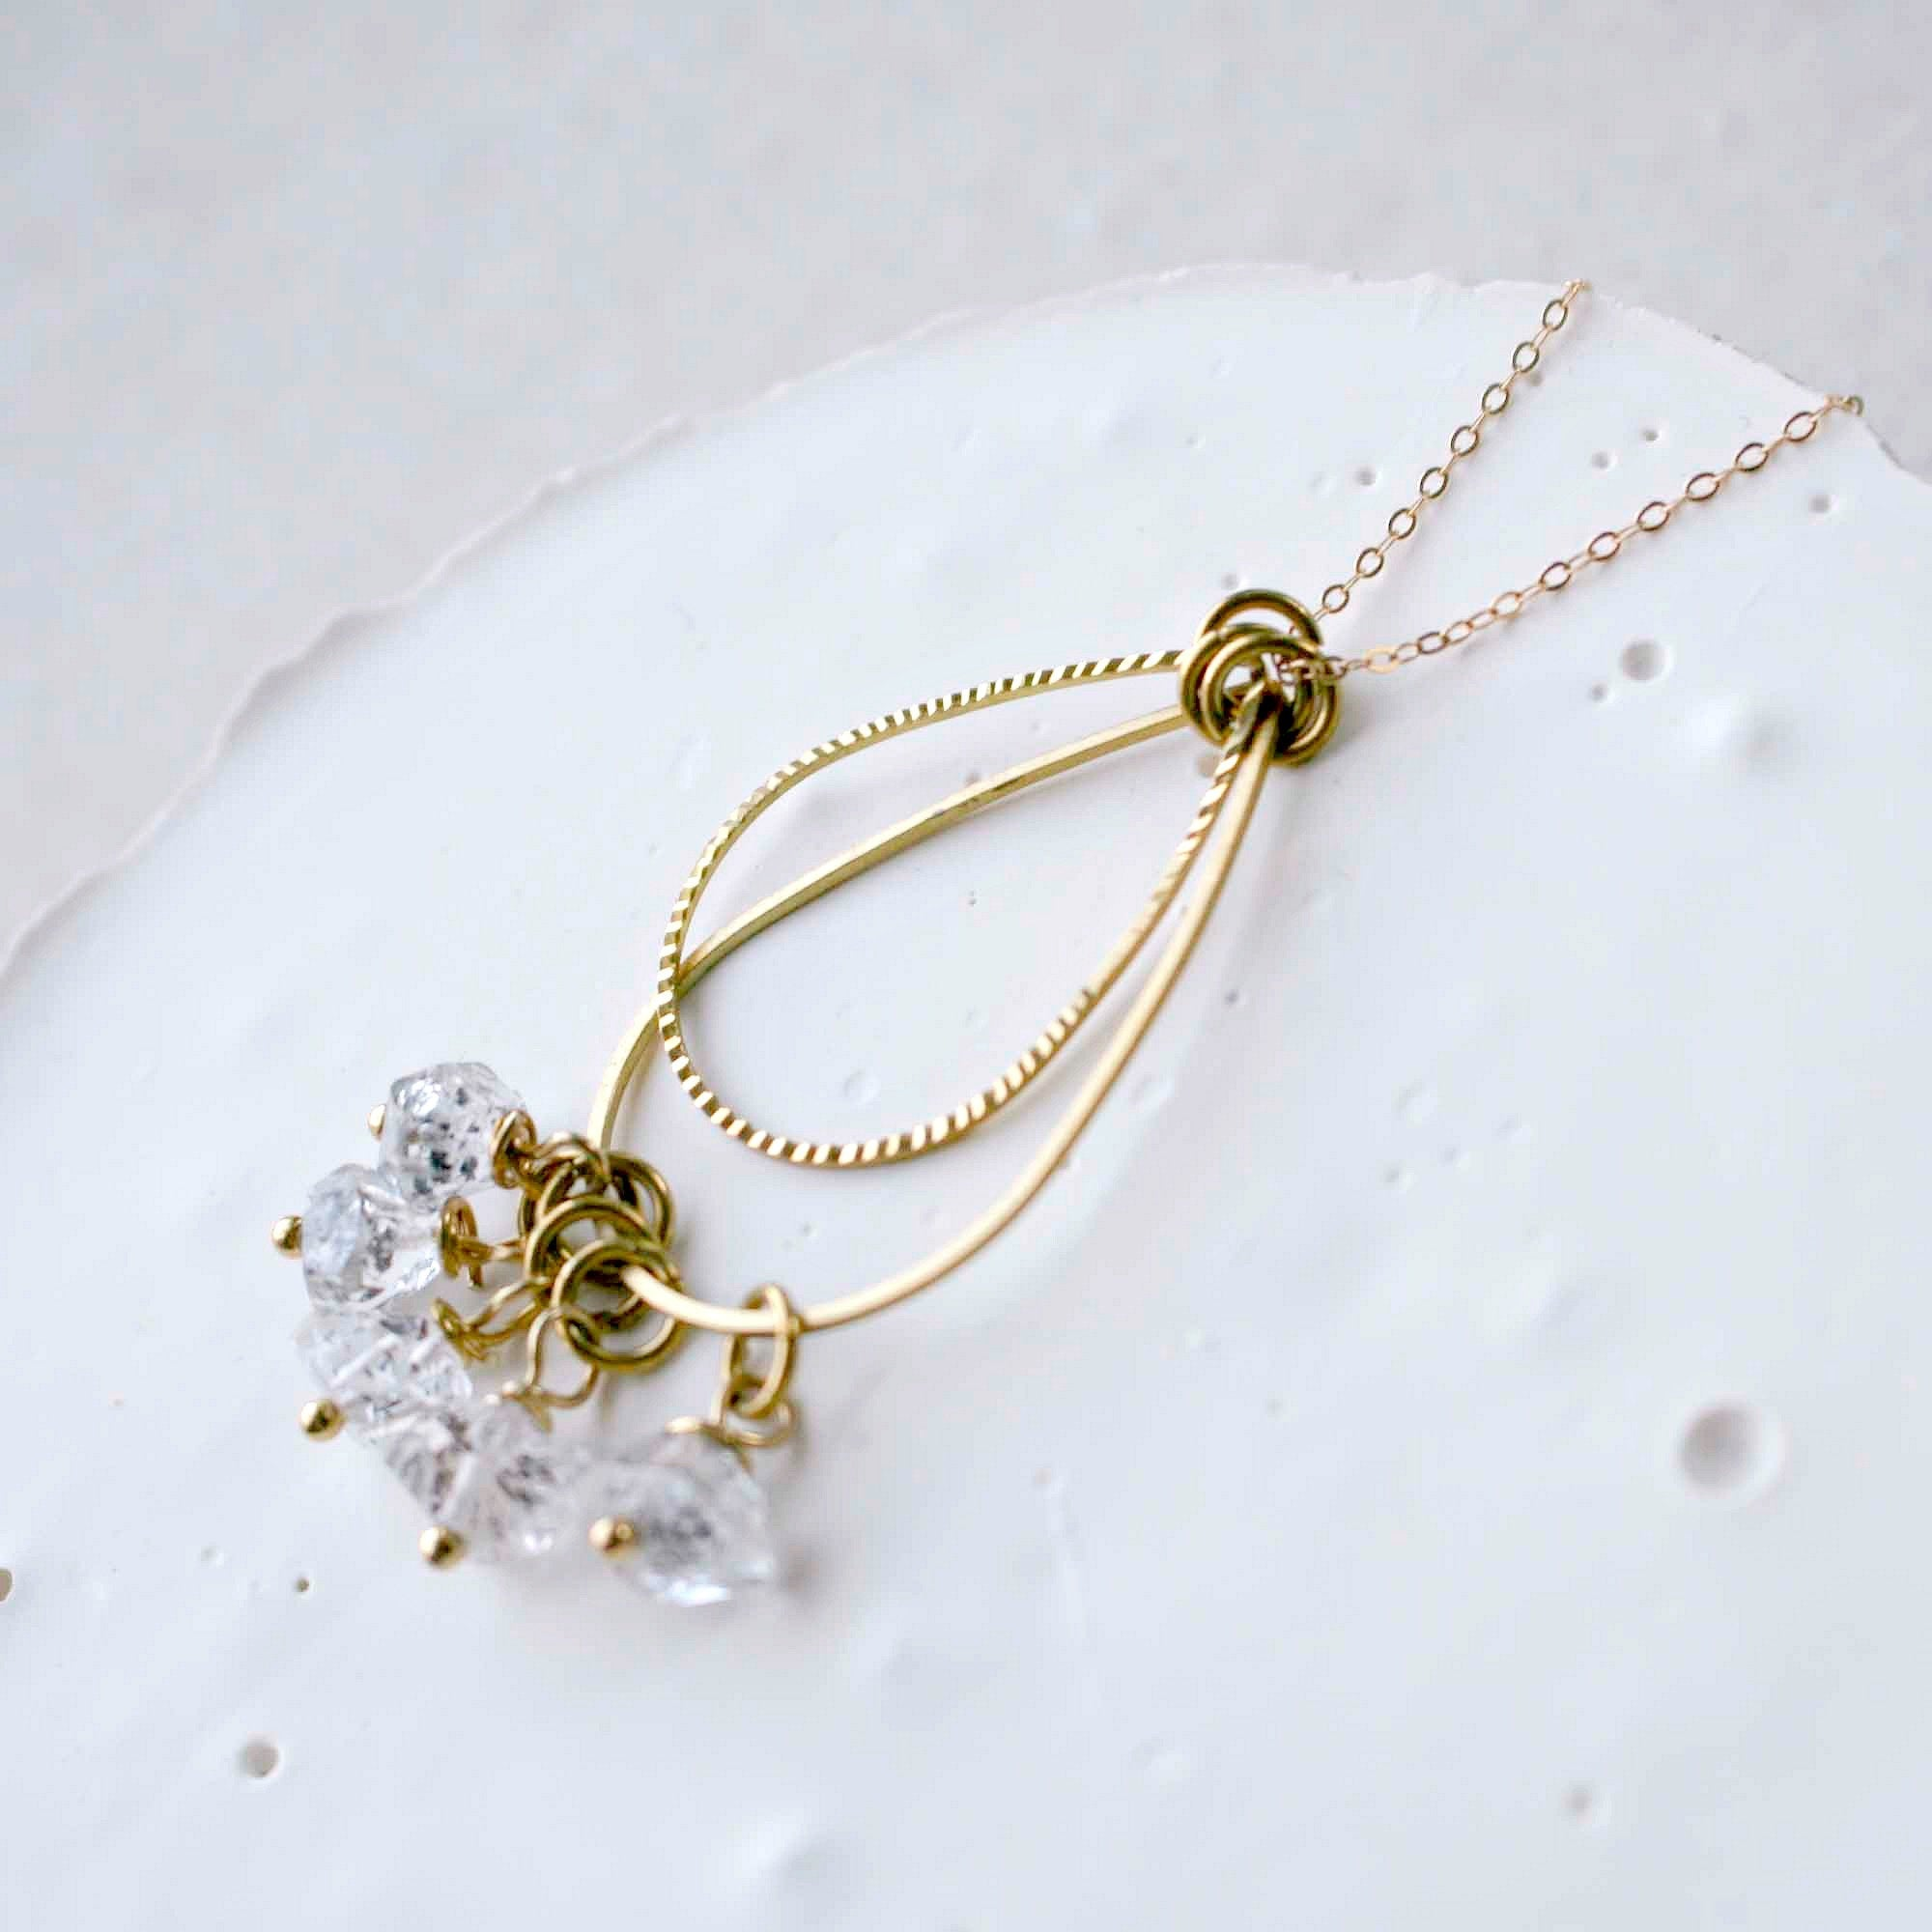 Herkimer Diamond Necklace, April Birthday, Gift for Women, Raw Quartz Necklace, Birthstone Gifts for Her, Crystal Necklace for Mom